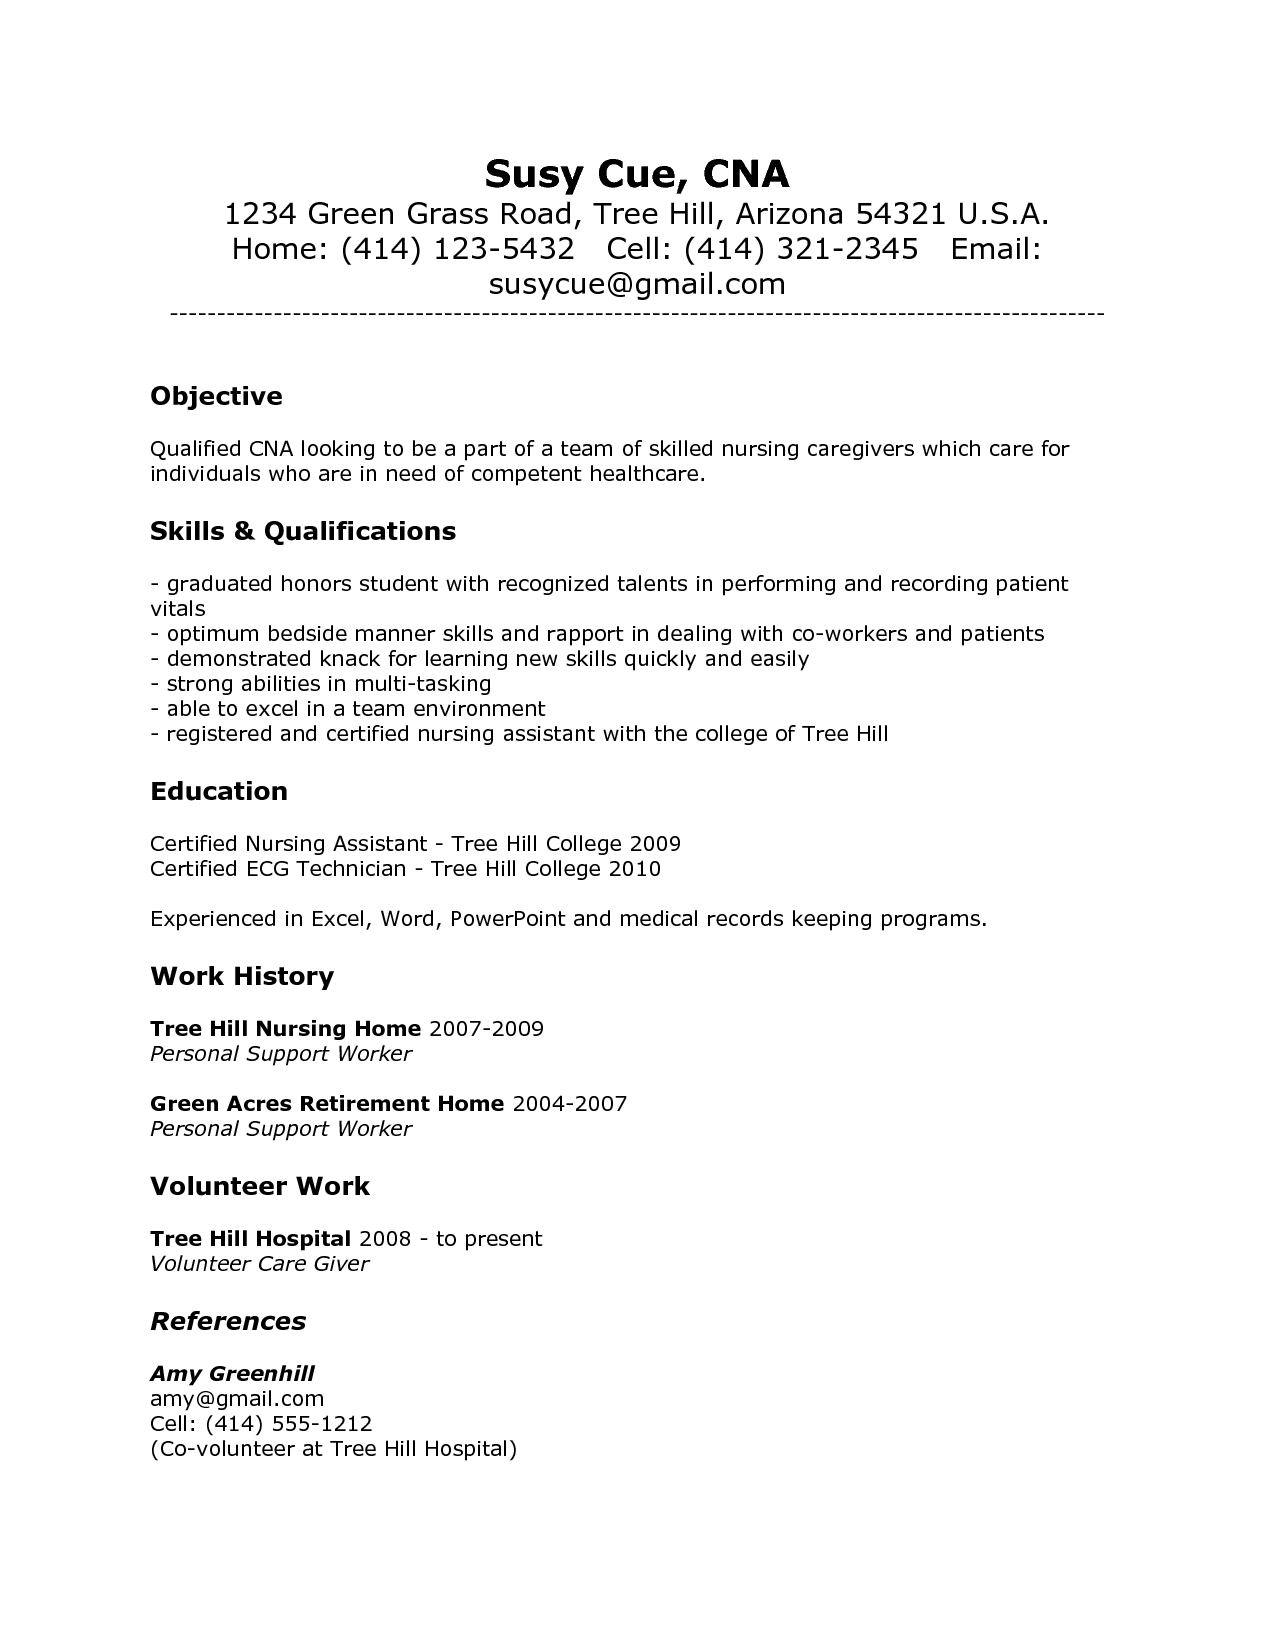 Resume Samples For Cna Grude Interpretomics Co